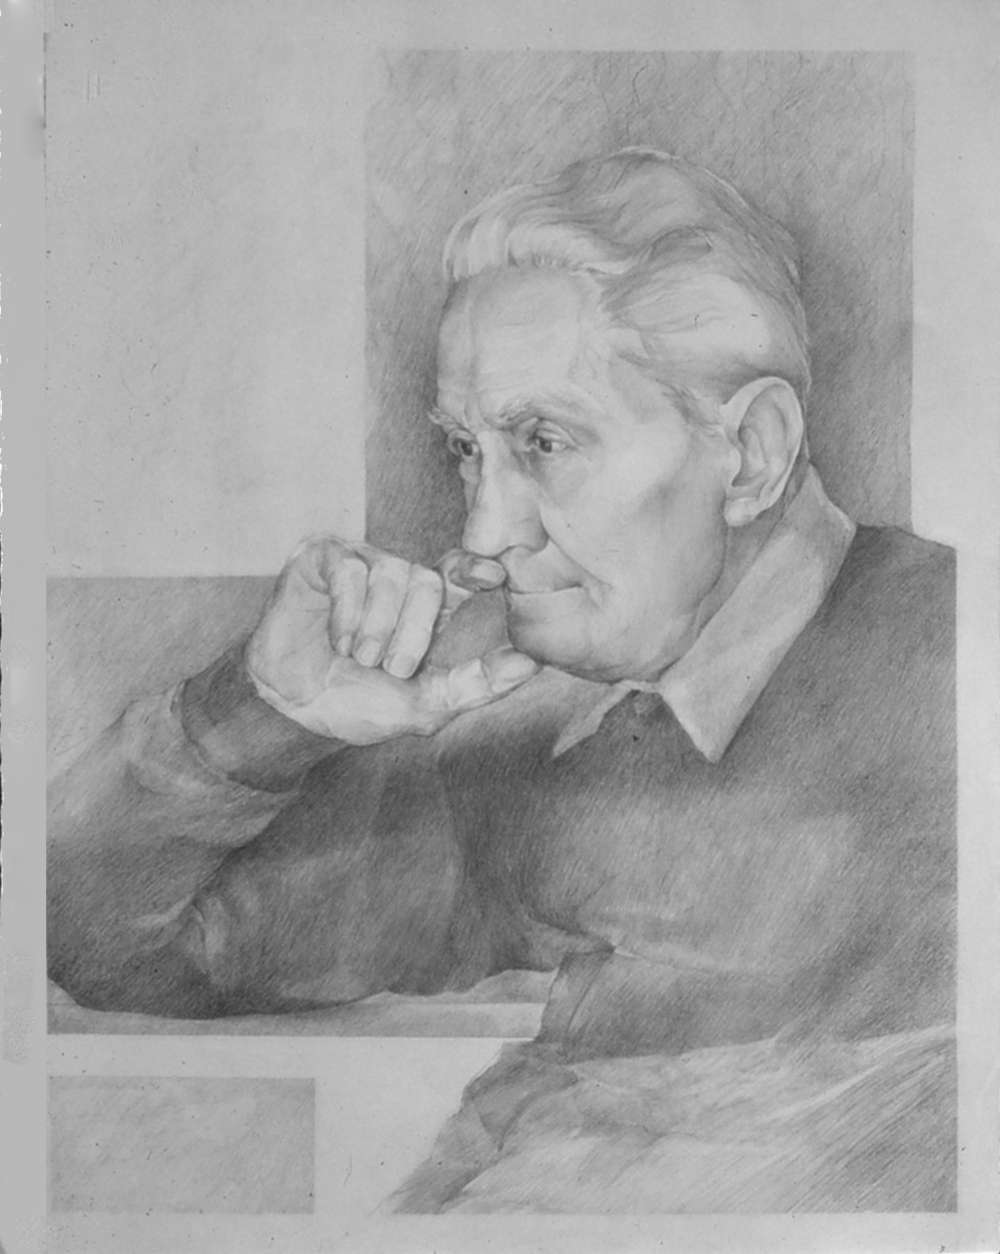 5dw - Of The Cross- pencil on paper, 24x36 in., 1978.jpg